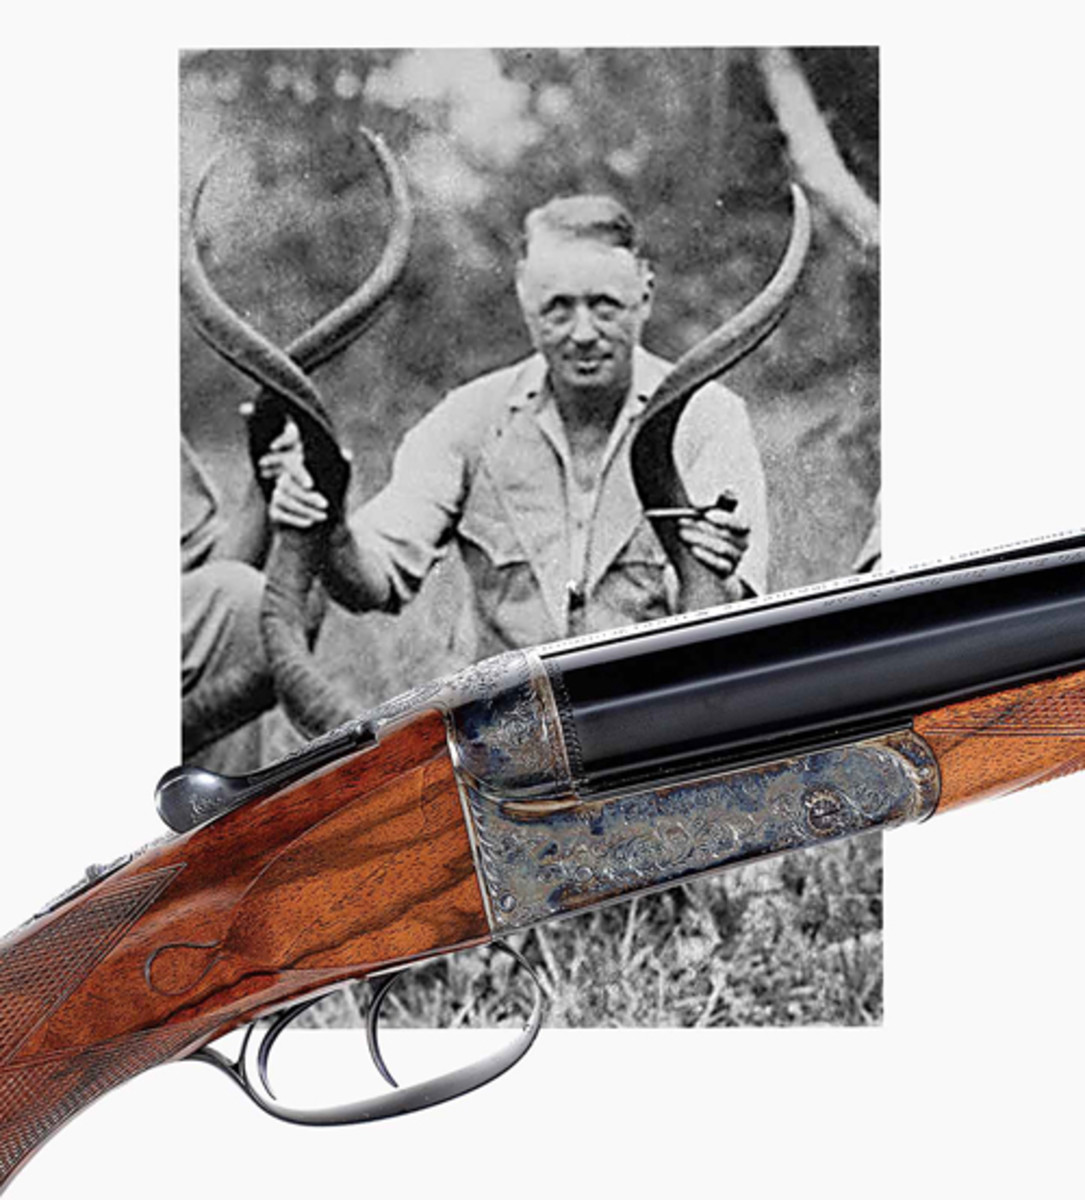 "2.Lot #2222, the Philip H. Percival's John Rigby 470 double rifle who inspired Hemingway's character, ""Pop"", in ""Greenhills of Africa"". Percival guided T. Roosevelt, Baron Rothschild, and Ernest Hemingway. This rare and historic double rifle is estimated at $75,000-125,000."